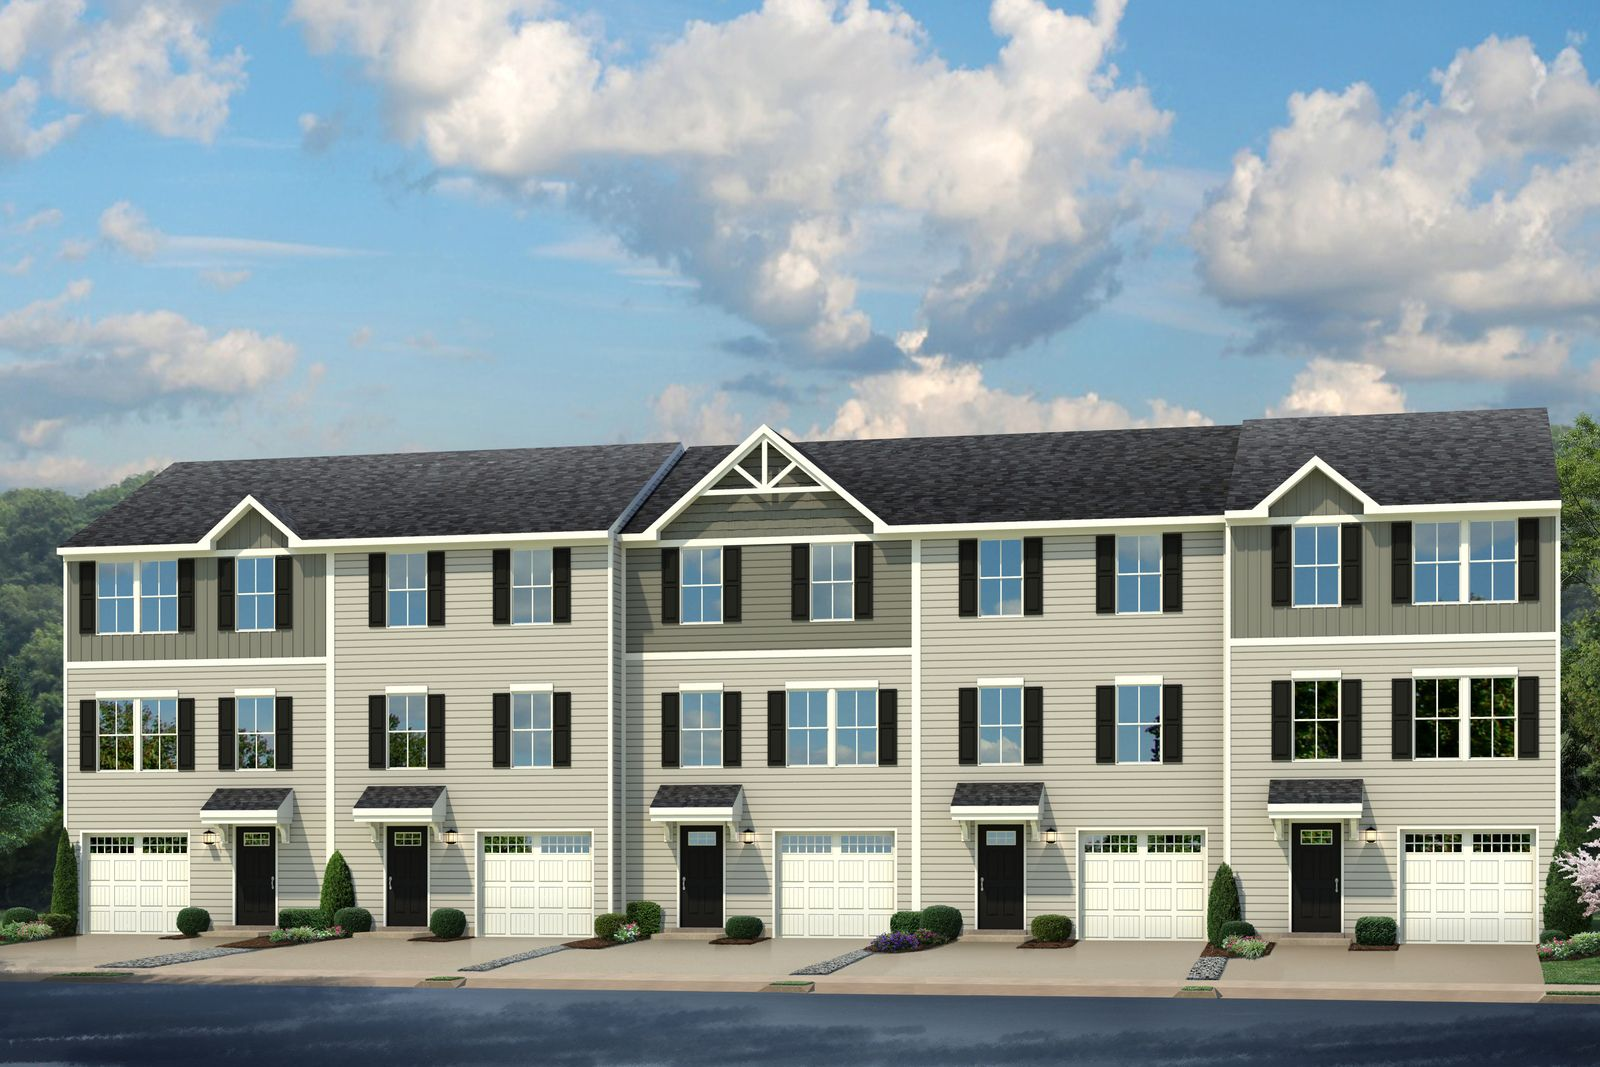 Welcome to Spring Oaks:Affordable homes withflexible financing options in the Appoquinimink School District.Schedule your tour today!